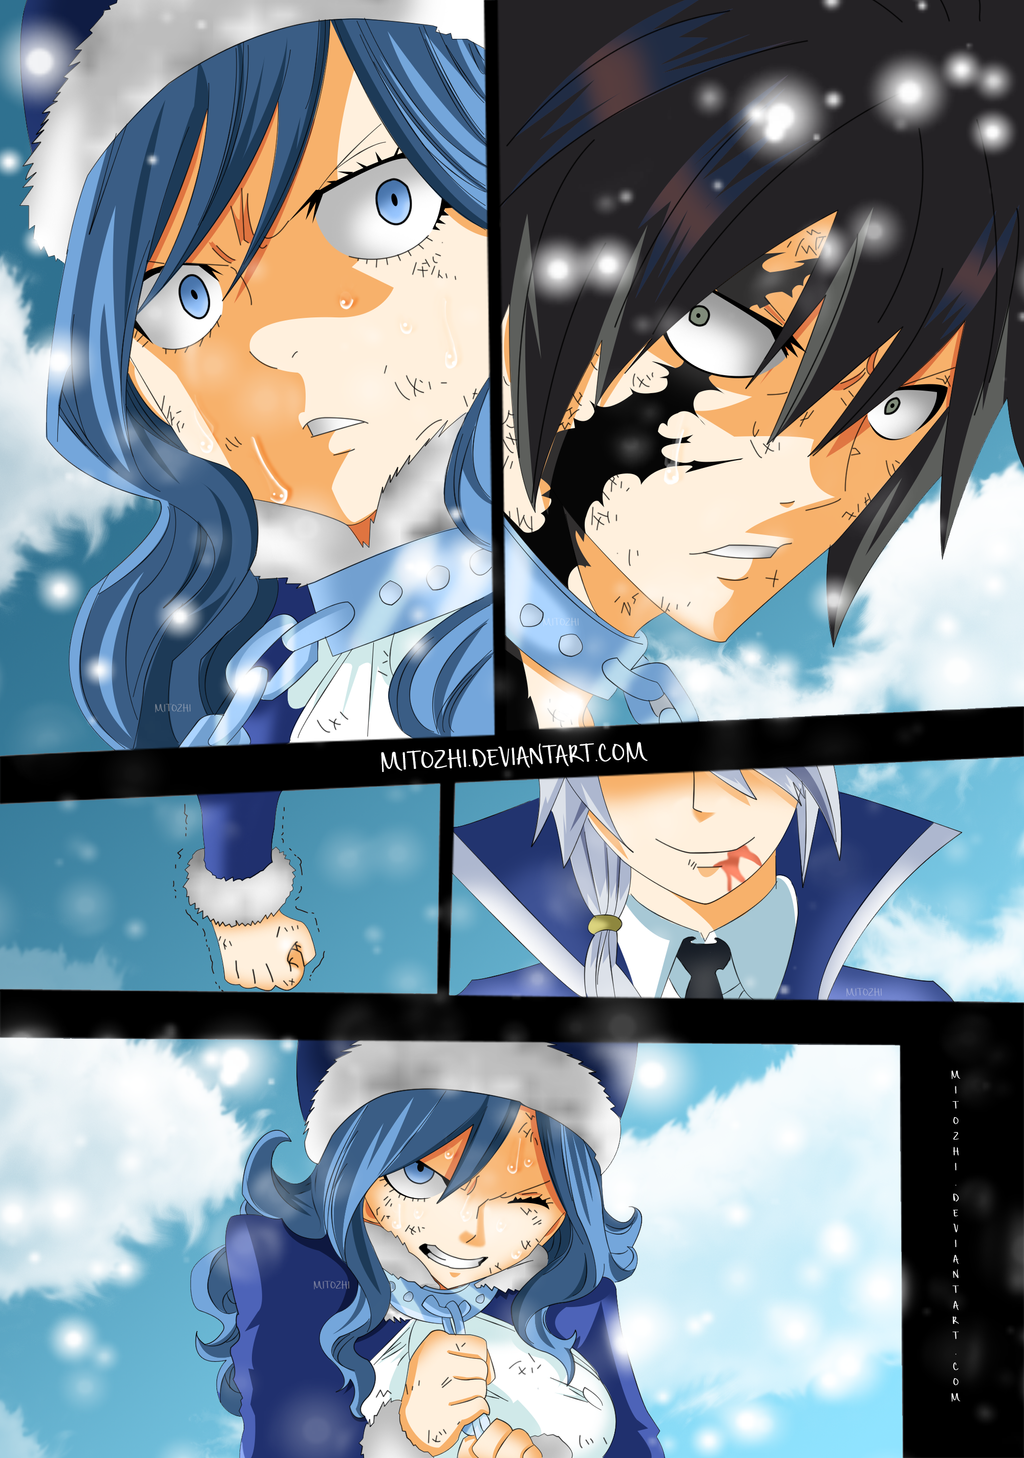 juviaandgrayfairytail498 by mitozhi on deviantart